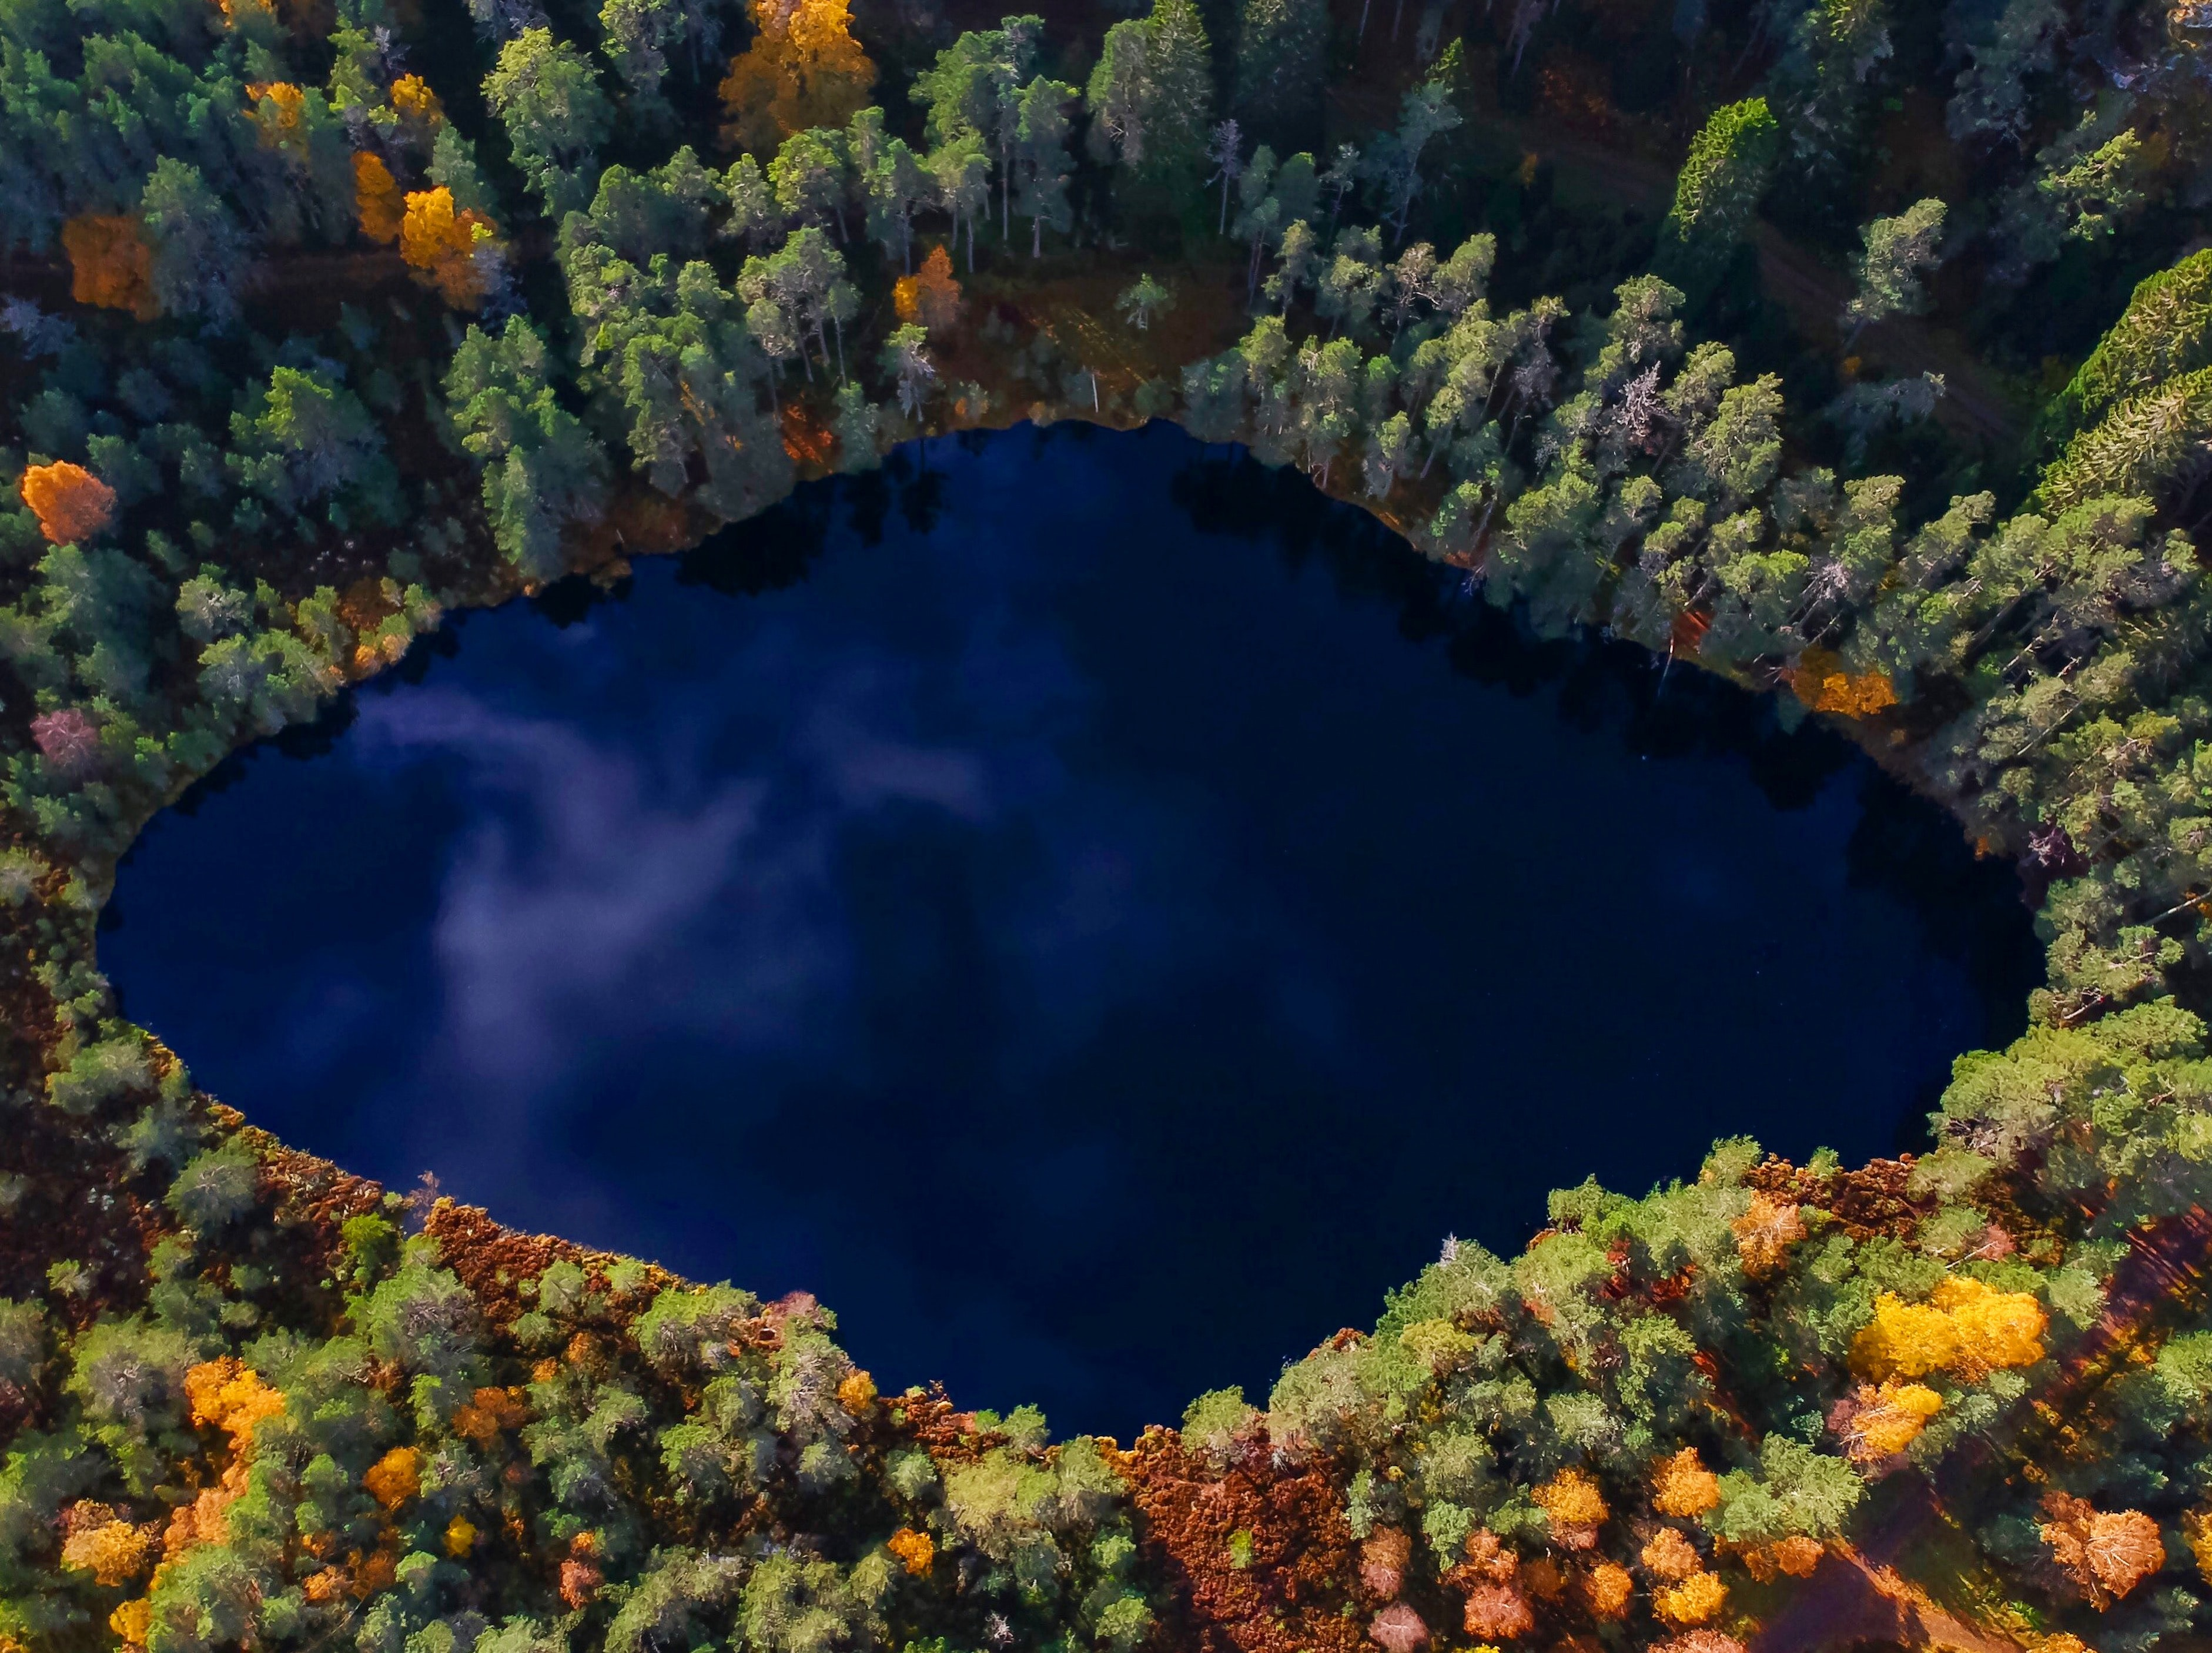 aerial view photography of lake surrounded by trees during daytime